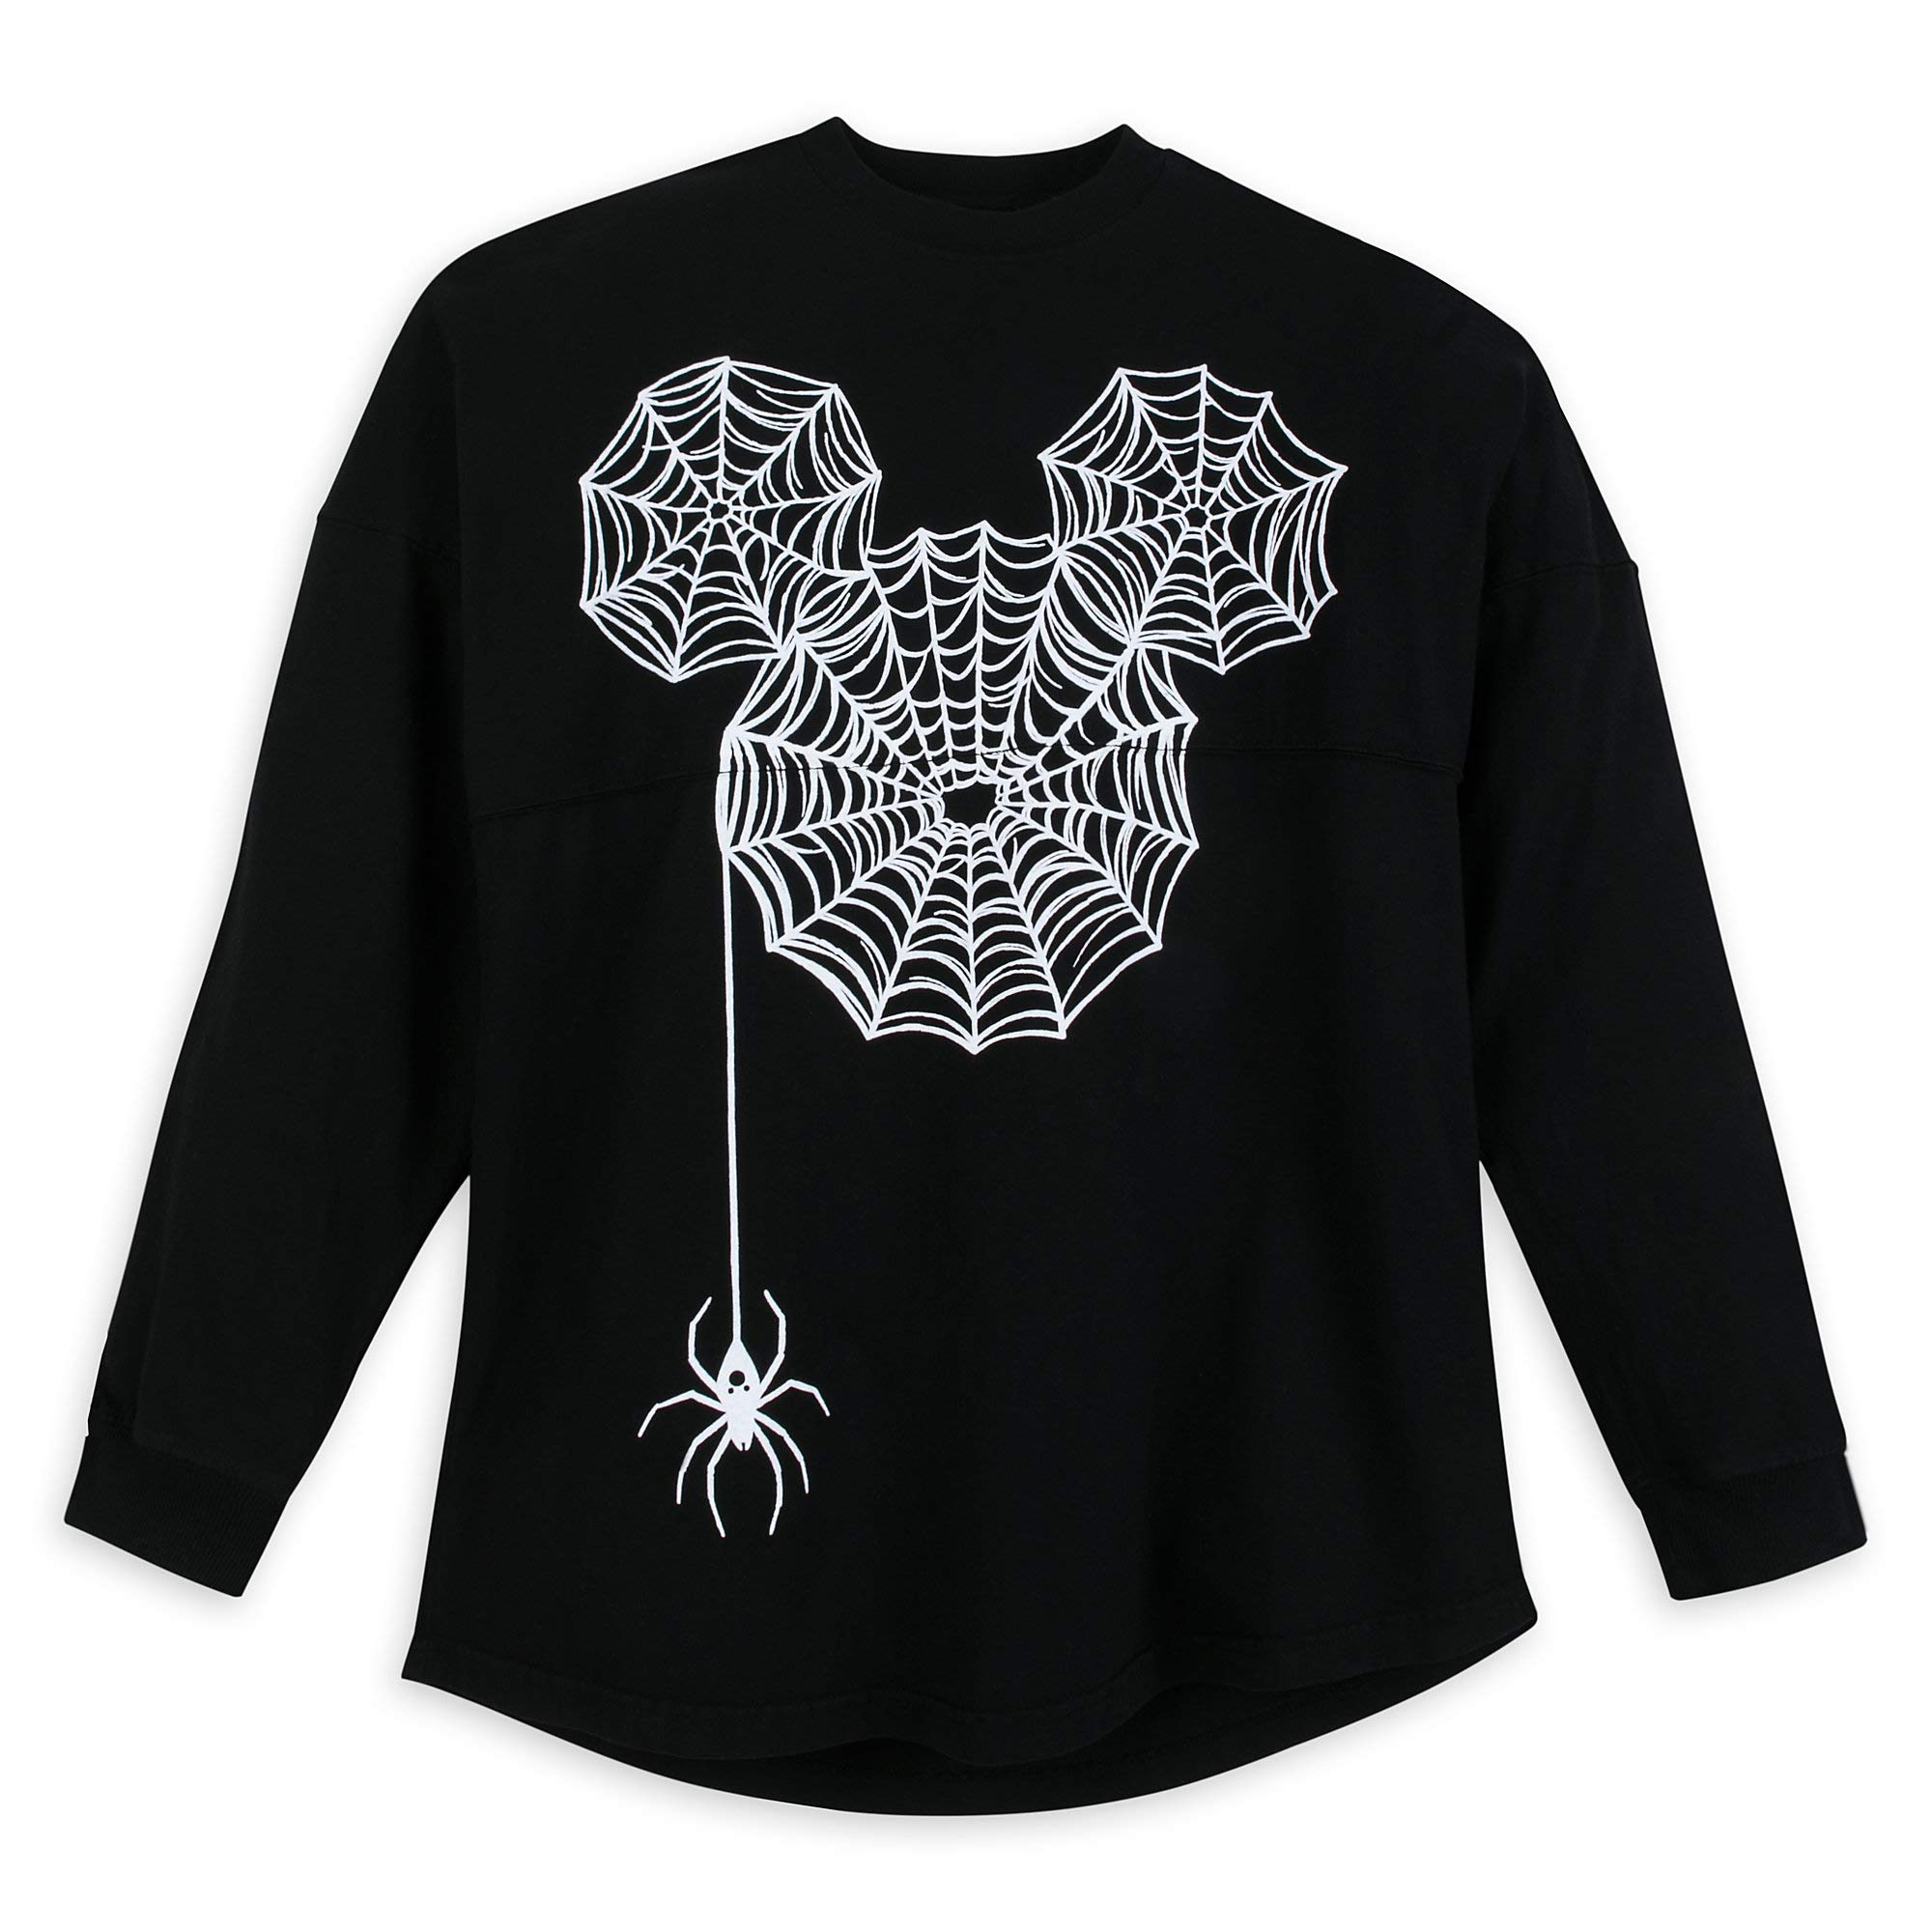 Disney Mickey Mouse Halloween Spirit Jersey for Adults Size Ladies M Multi by Disney